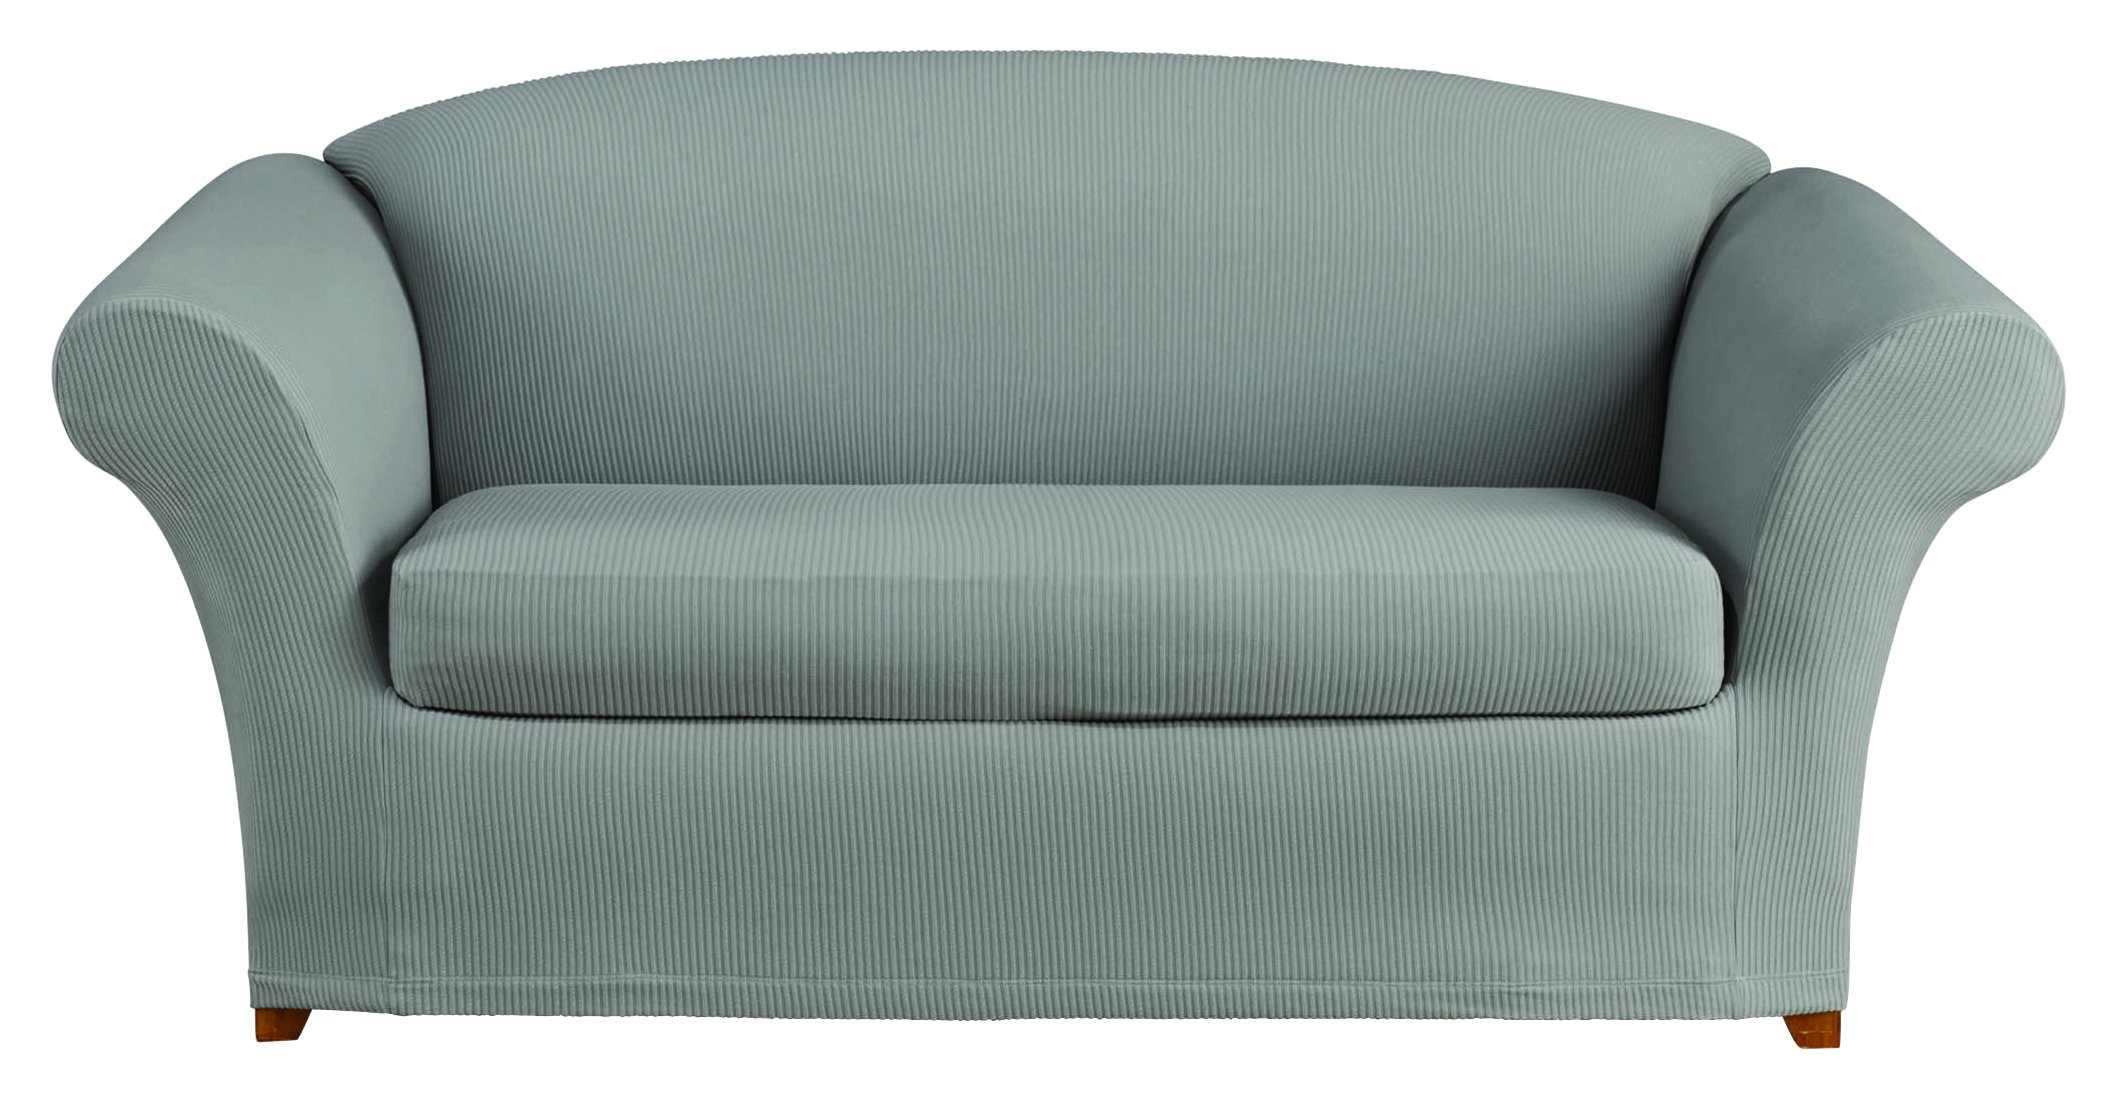 Sure Fit Stretch Seersucker 2-Piece - Loveseat Slipcover  - Coastal Gray (SF44937) by Surefit